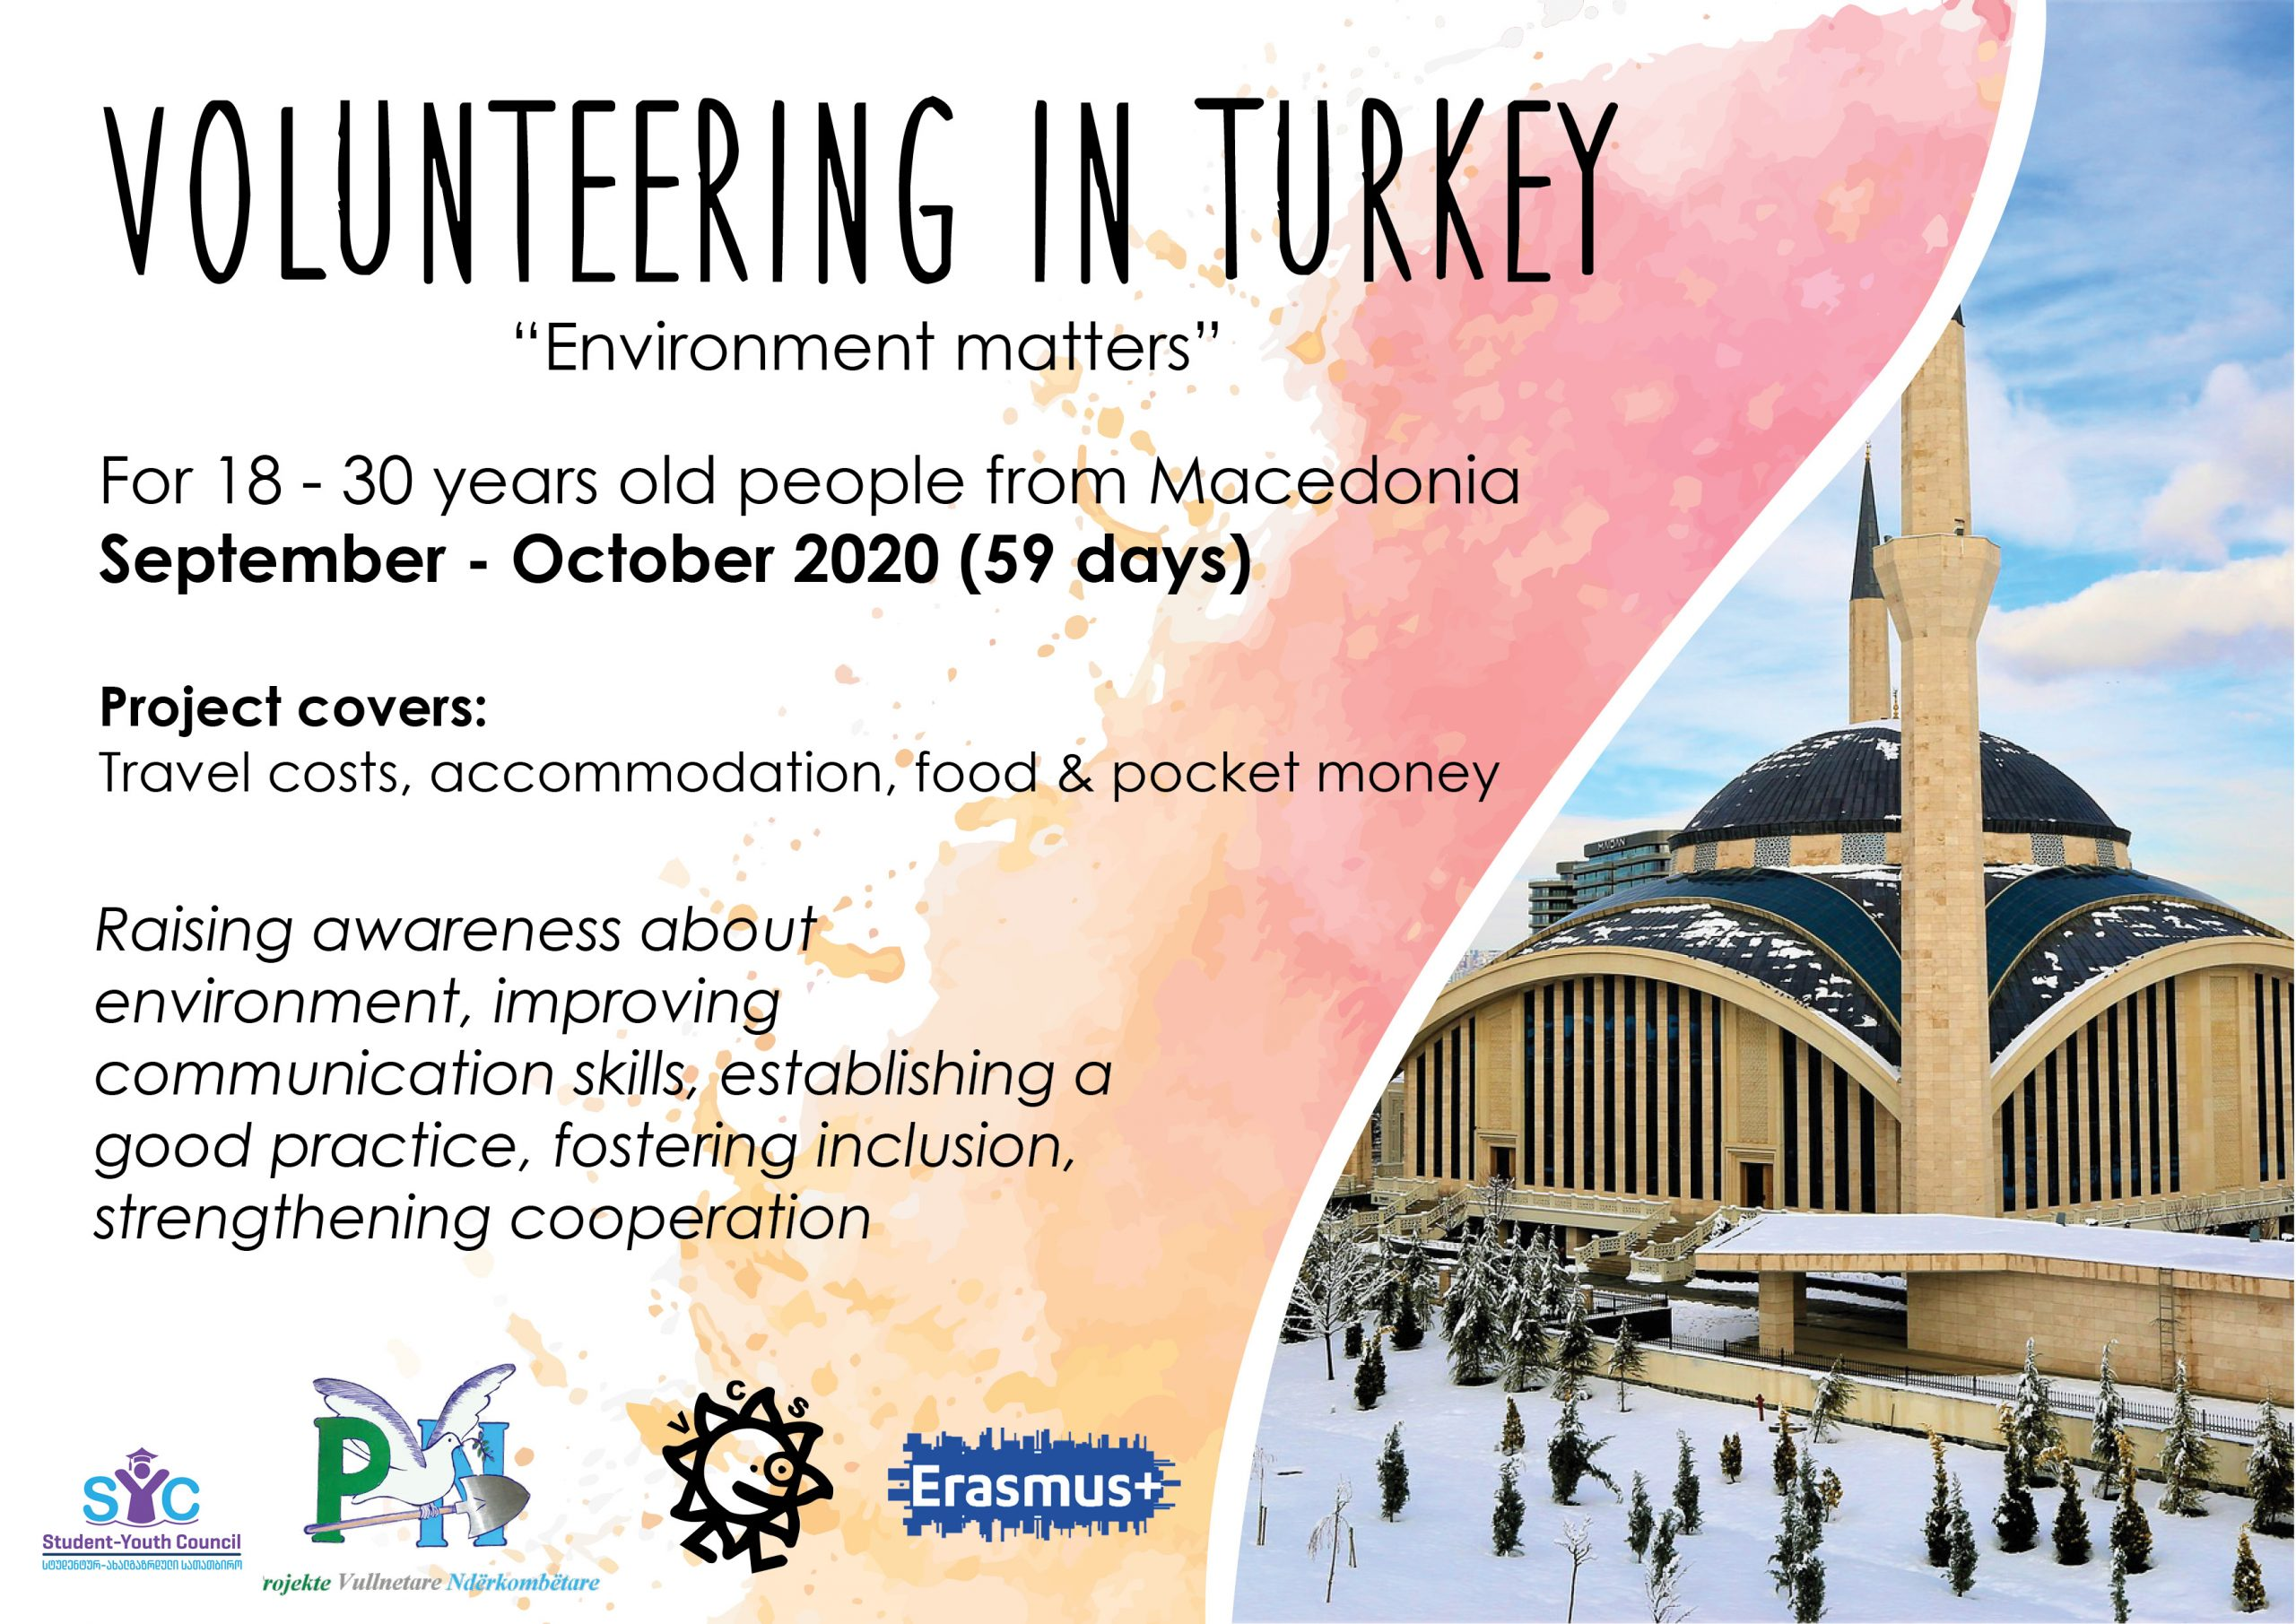 Call for volunteers in Turkey